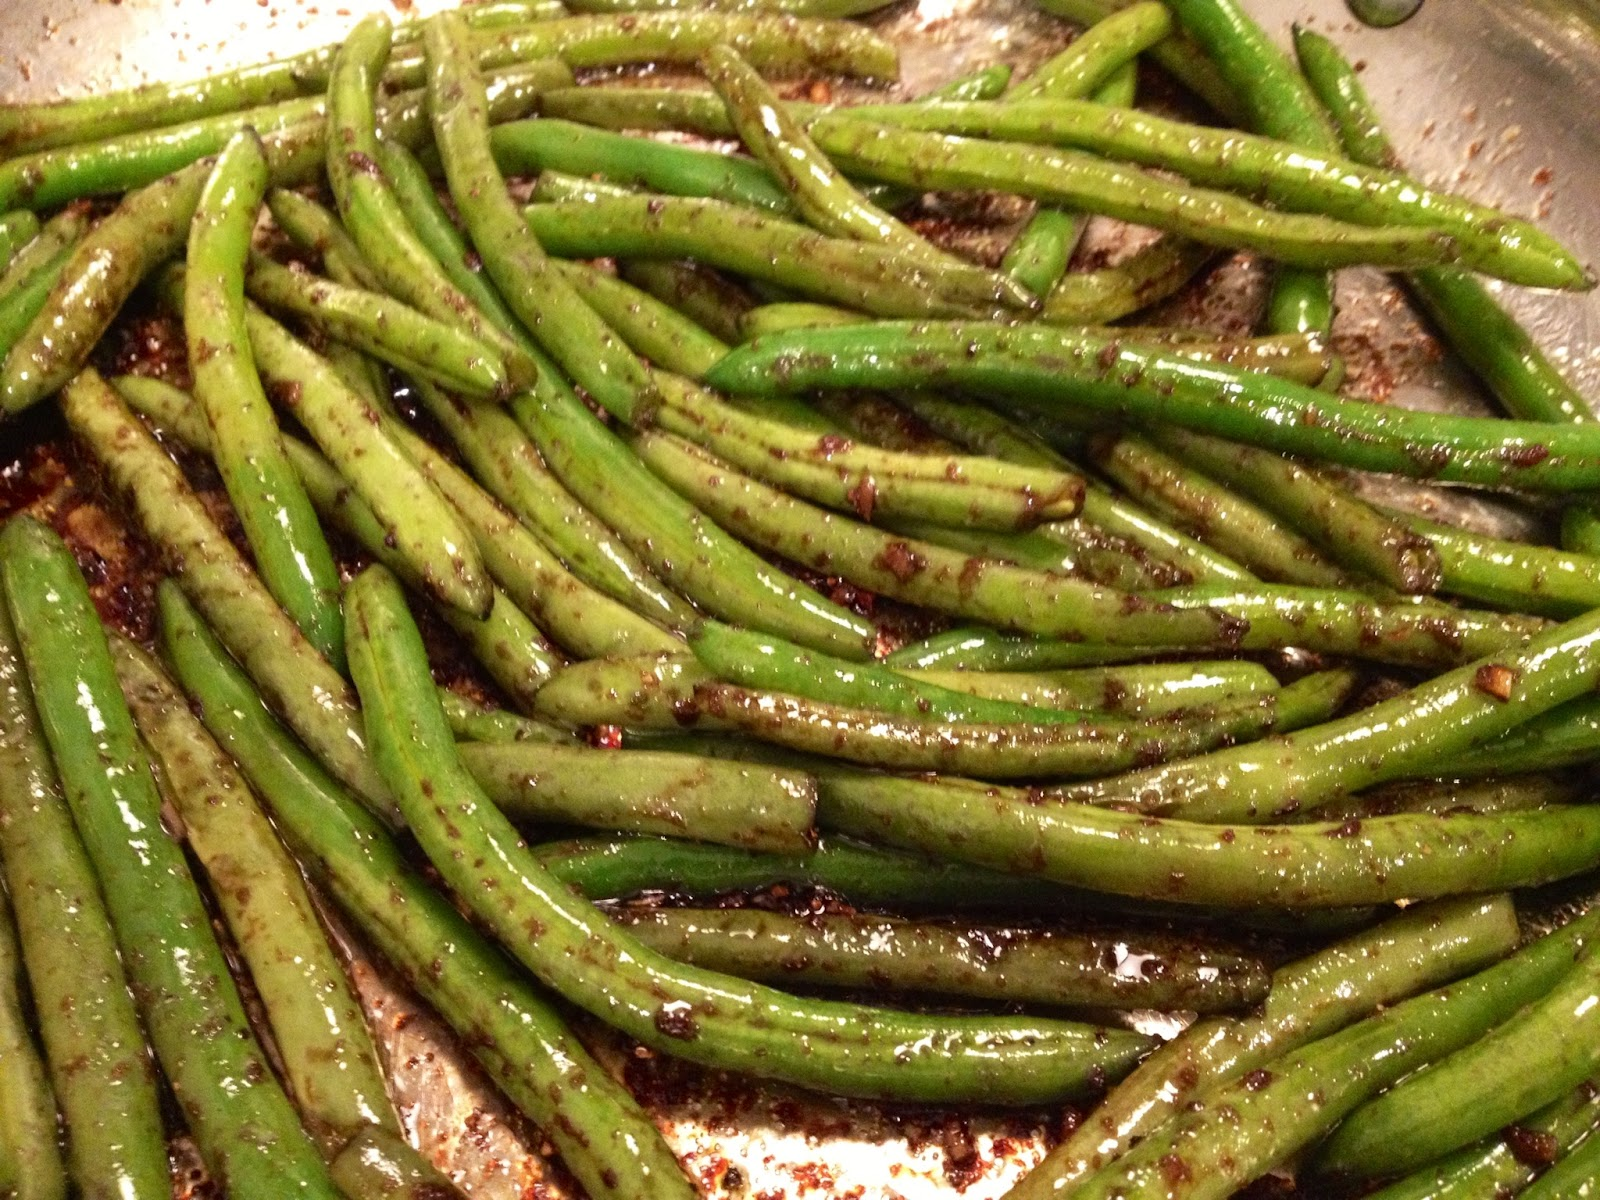 On Shea's Table: Honey Balsamic Green Beans